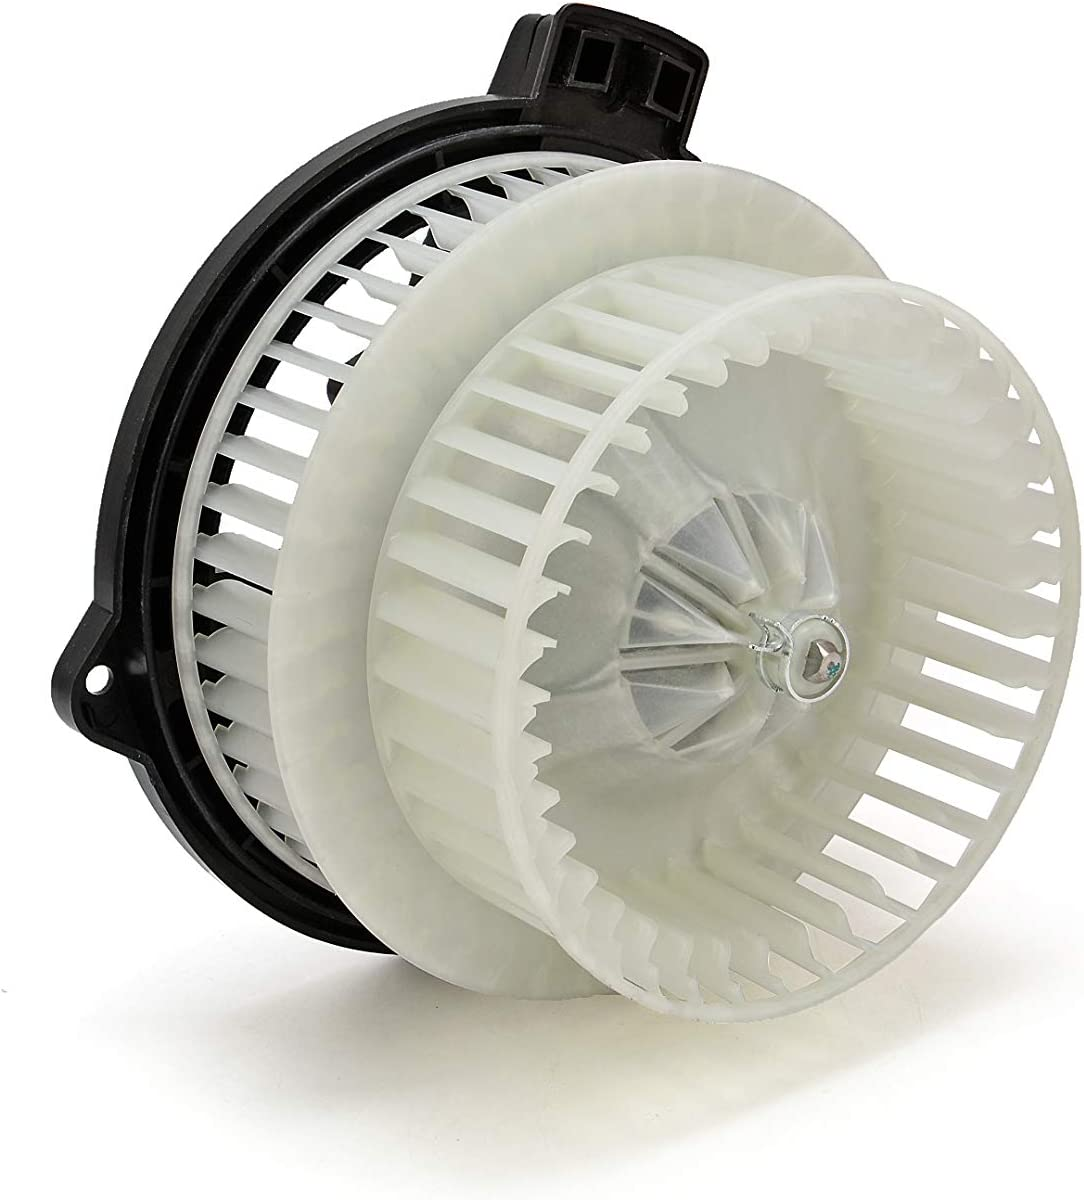 Replacement AC Heater Blower Motor with Fan - Compatible with Toyota Prius 2001, 2002, 2003, 2004, 2005, 2006, 2007, 2008, 2009 - Replaces 87130-47091, 87103-47020, 87103-47050, 75774, 700153